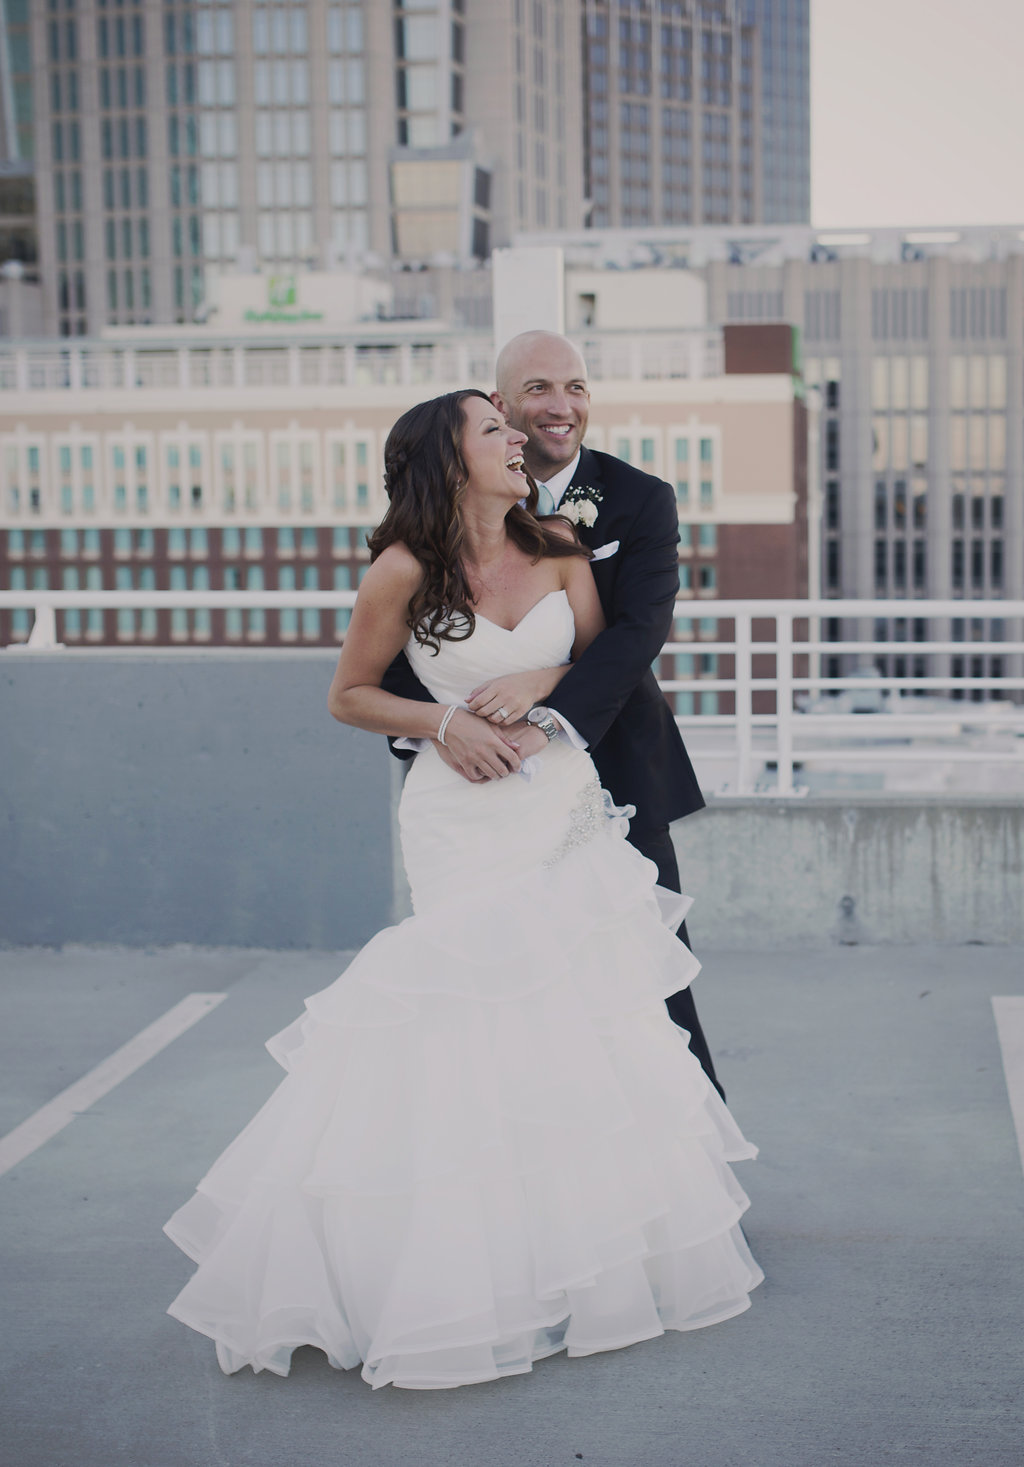 Bride and groom photos in Uptown Charlotte.